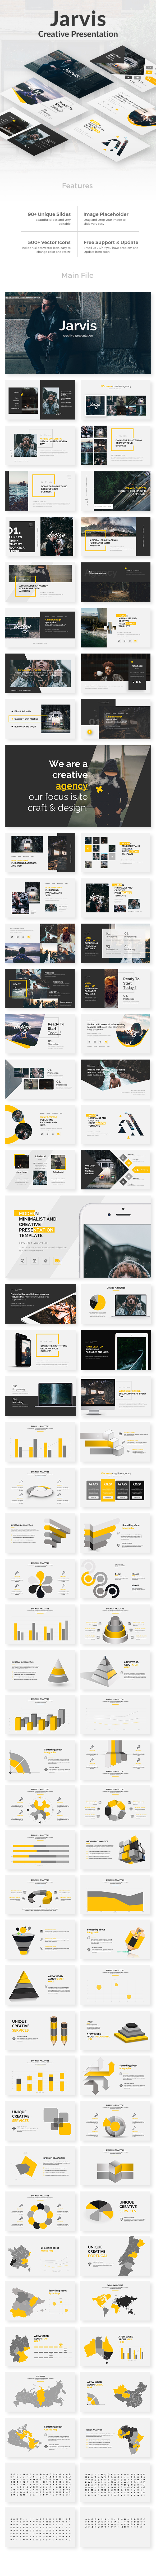 Jarvis Creative Google Slide Template - Google Slides Presentation Templates